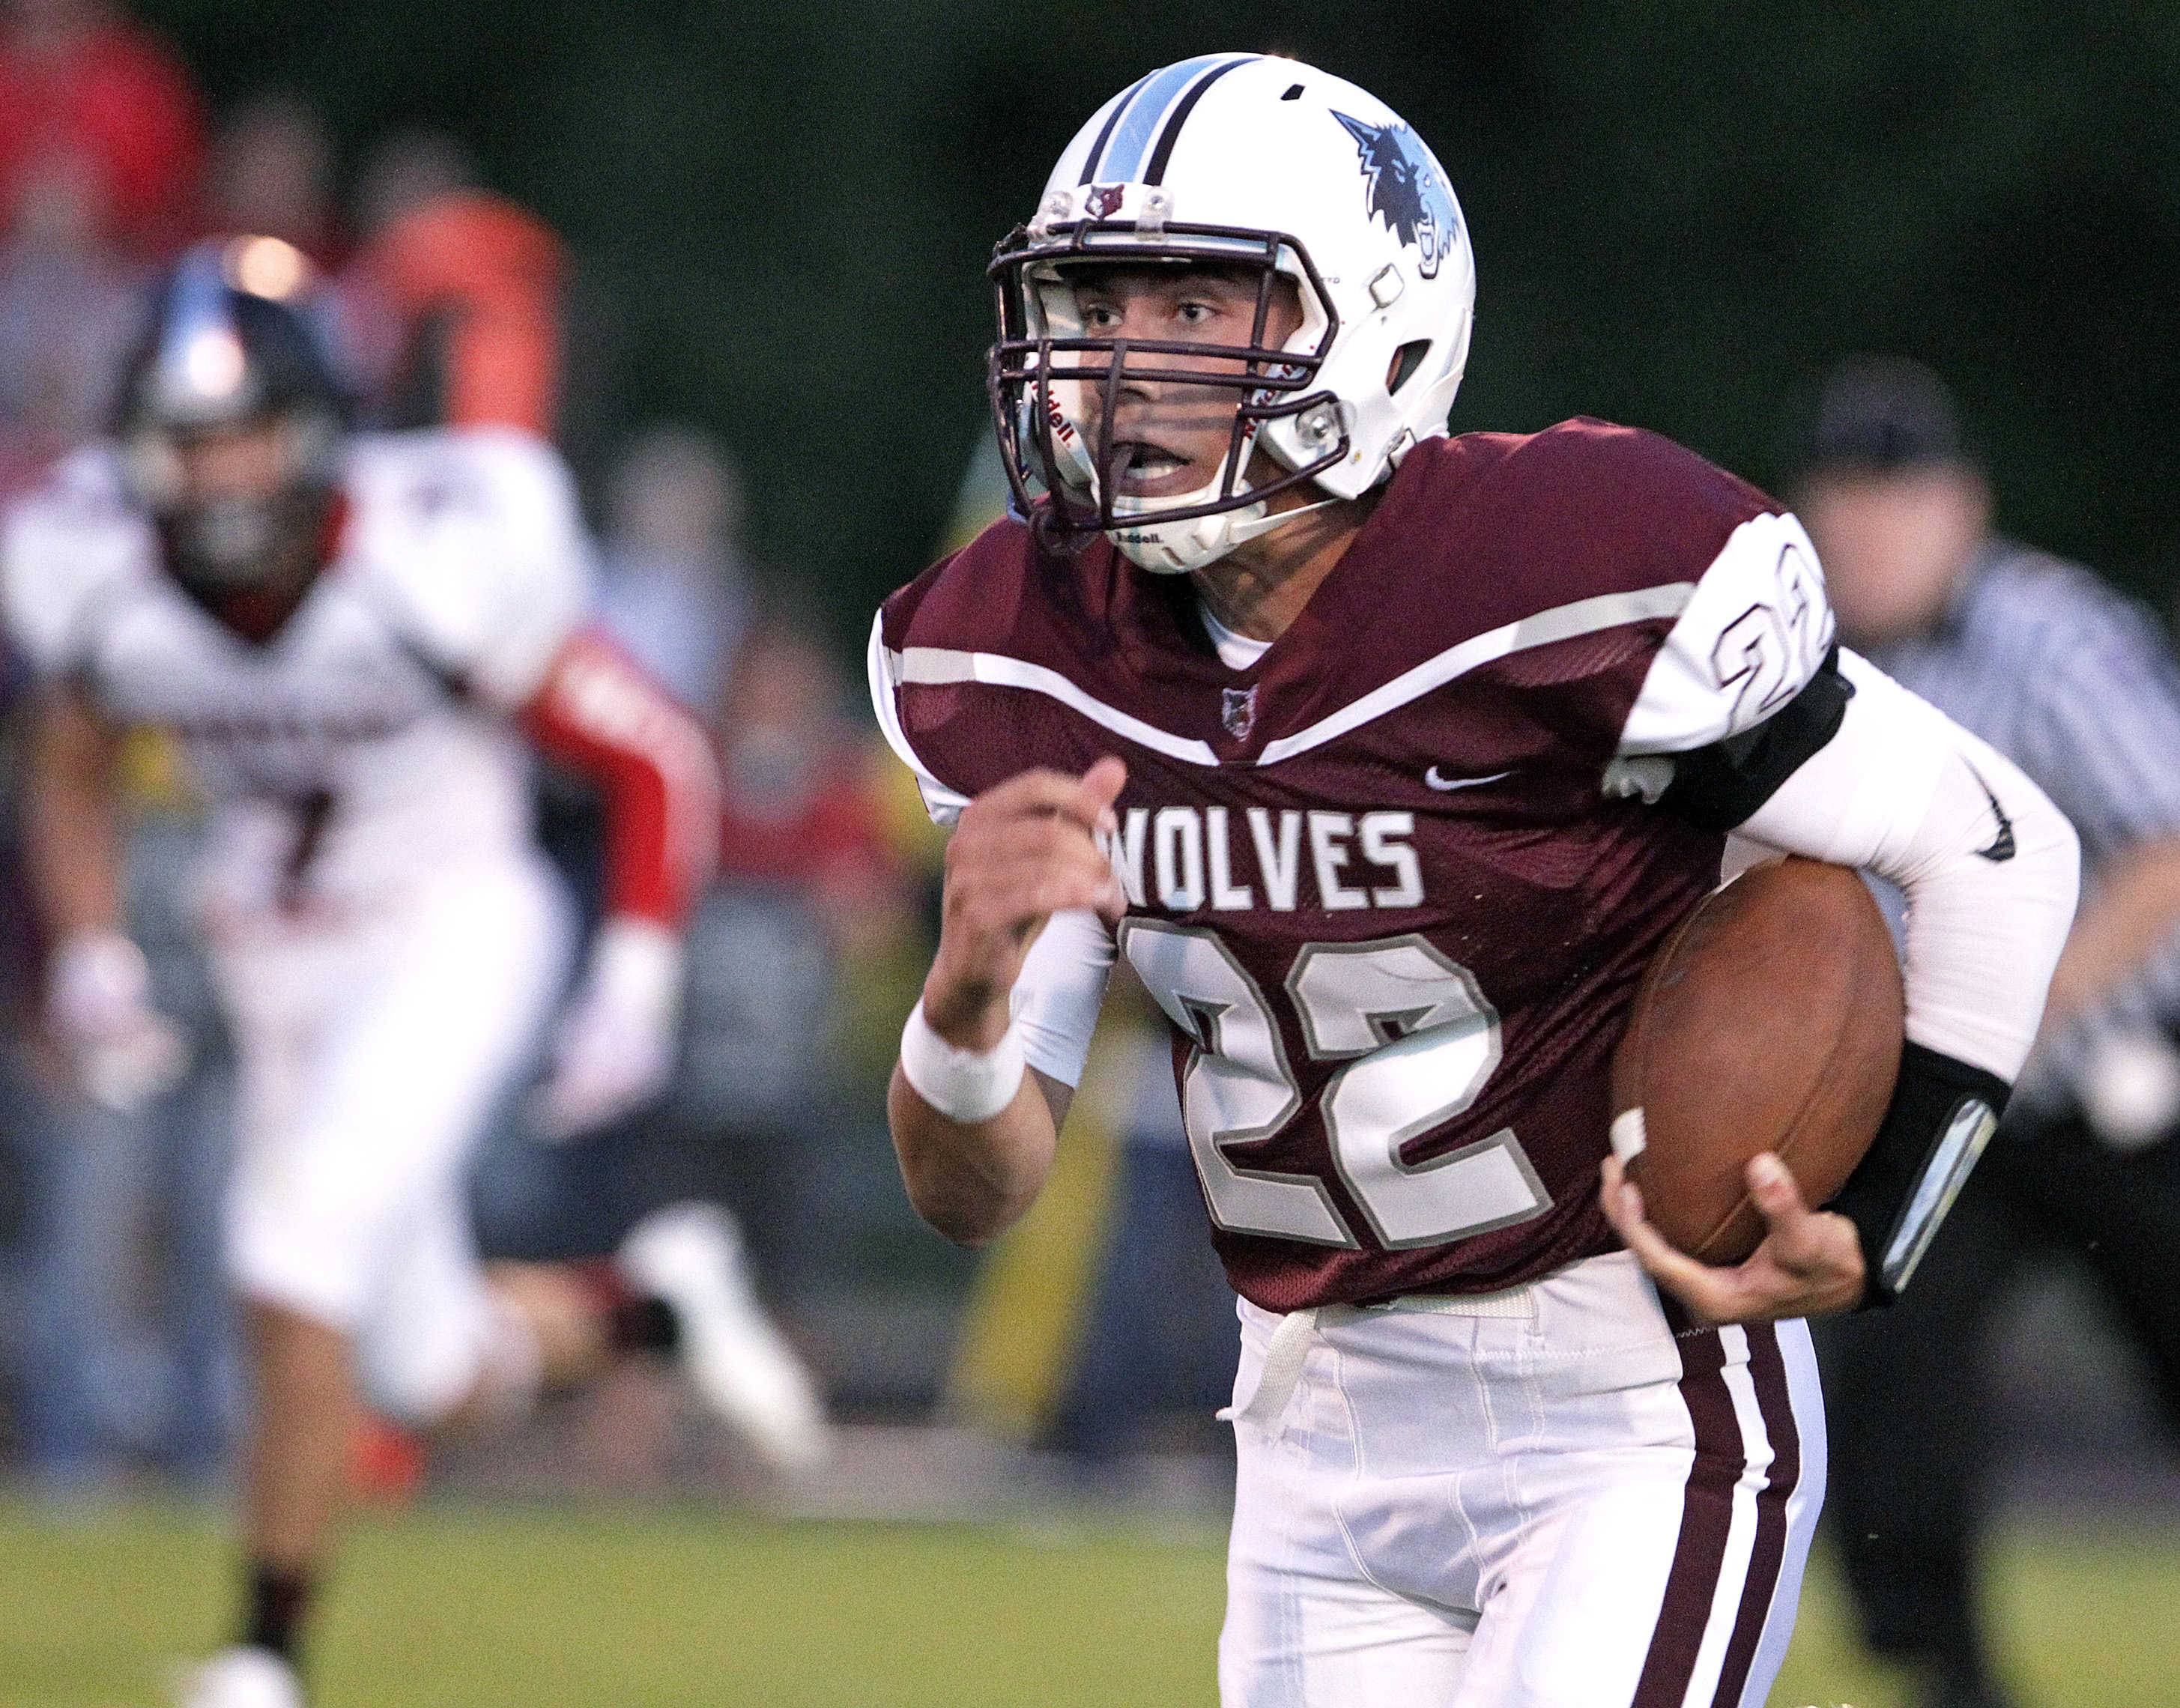 Prairie Ridge's Samson Evans runs 38 yards for a first down in the first quarter against Huntley on Friday.